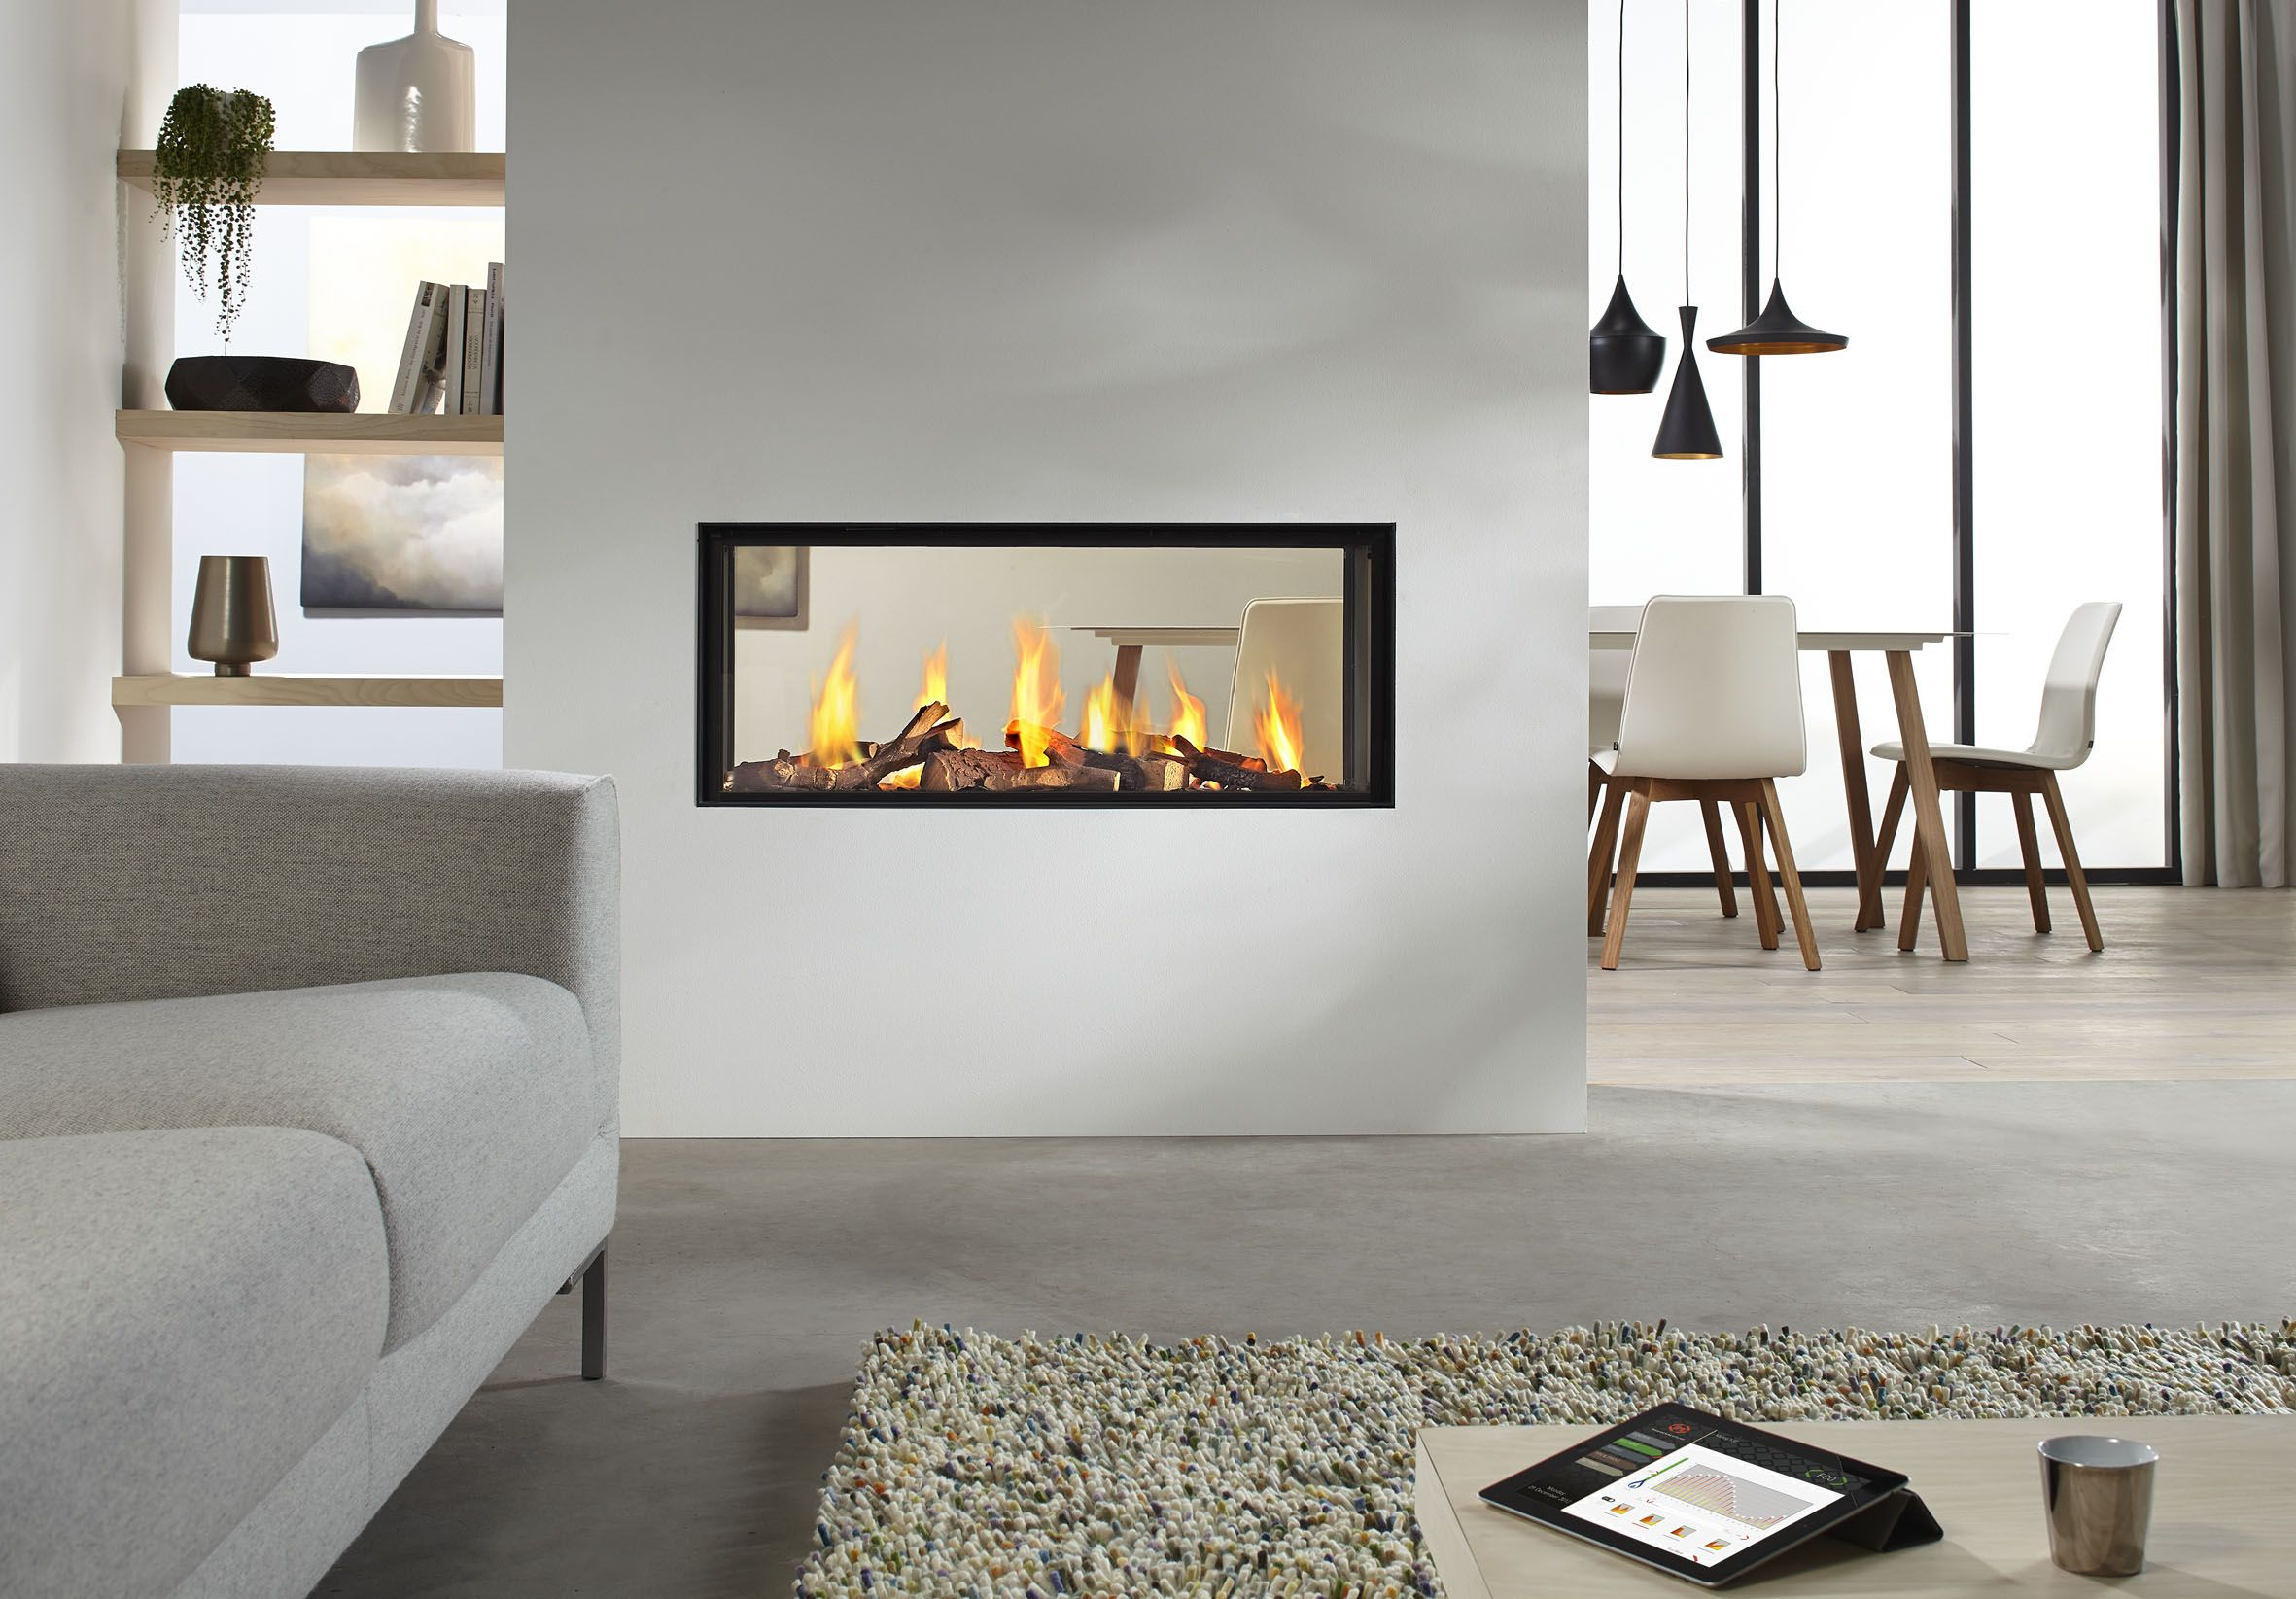 Dru Introduces New Metro 100xt Gas Fires With Tablet App Controls